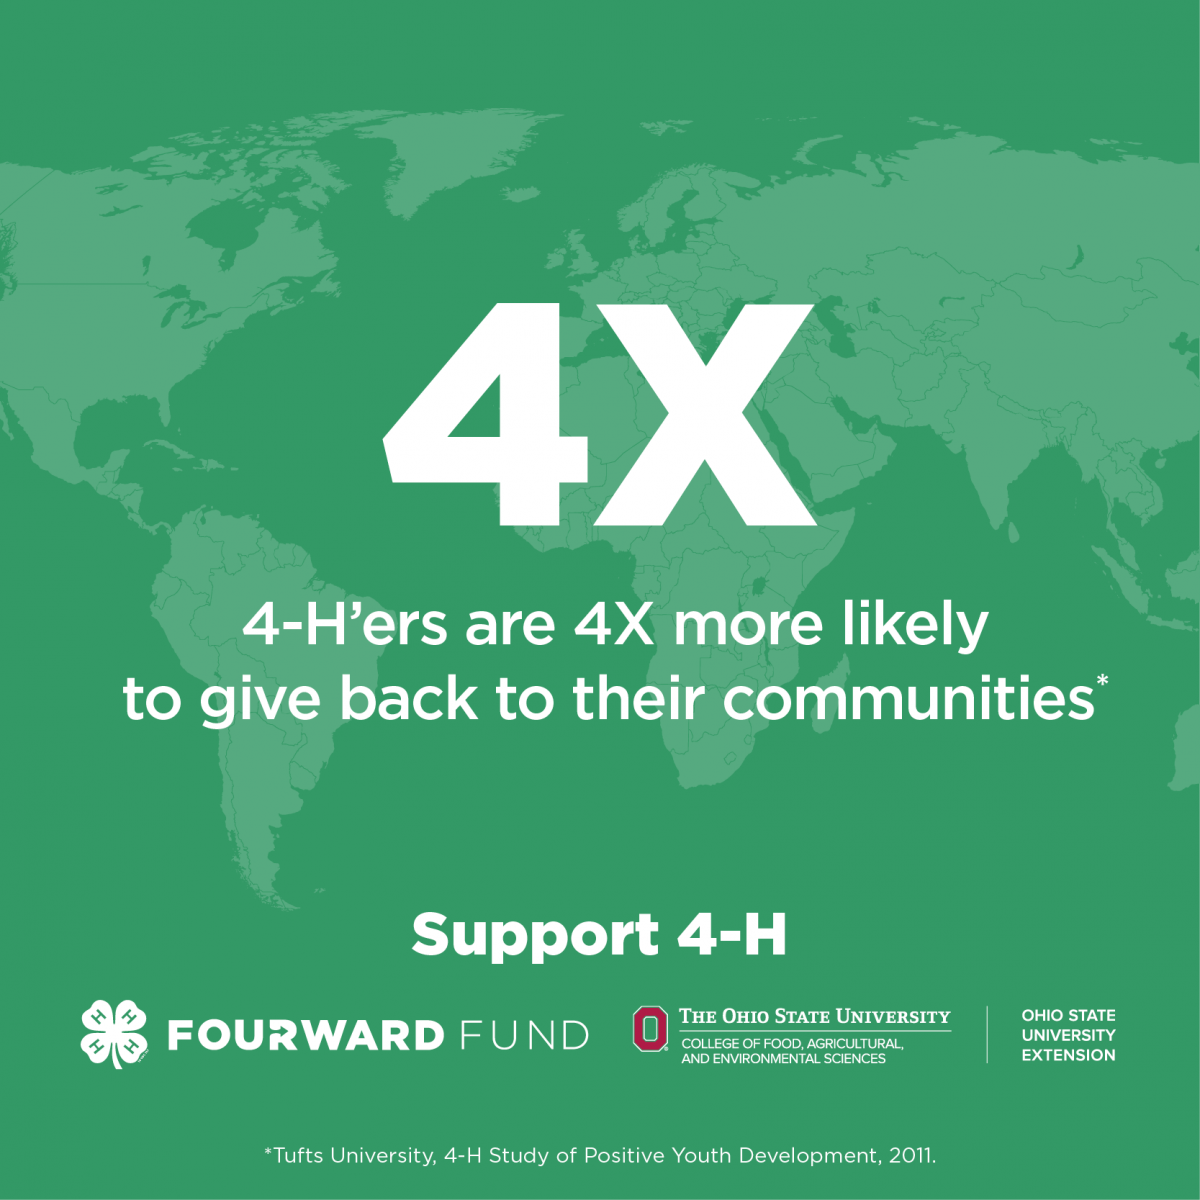 4-H'ers are 4x more likely to give back to their communities'.